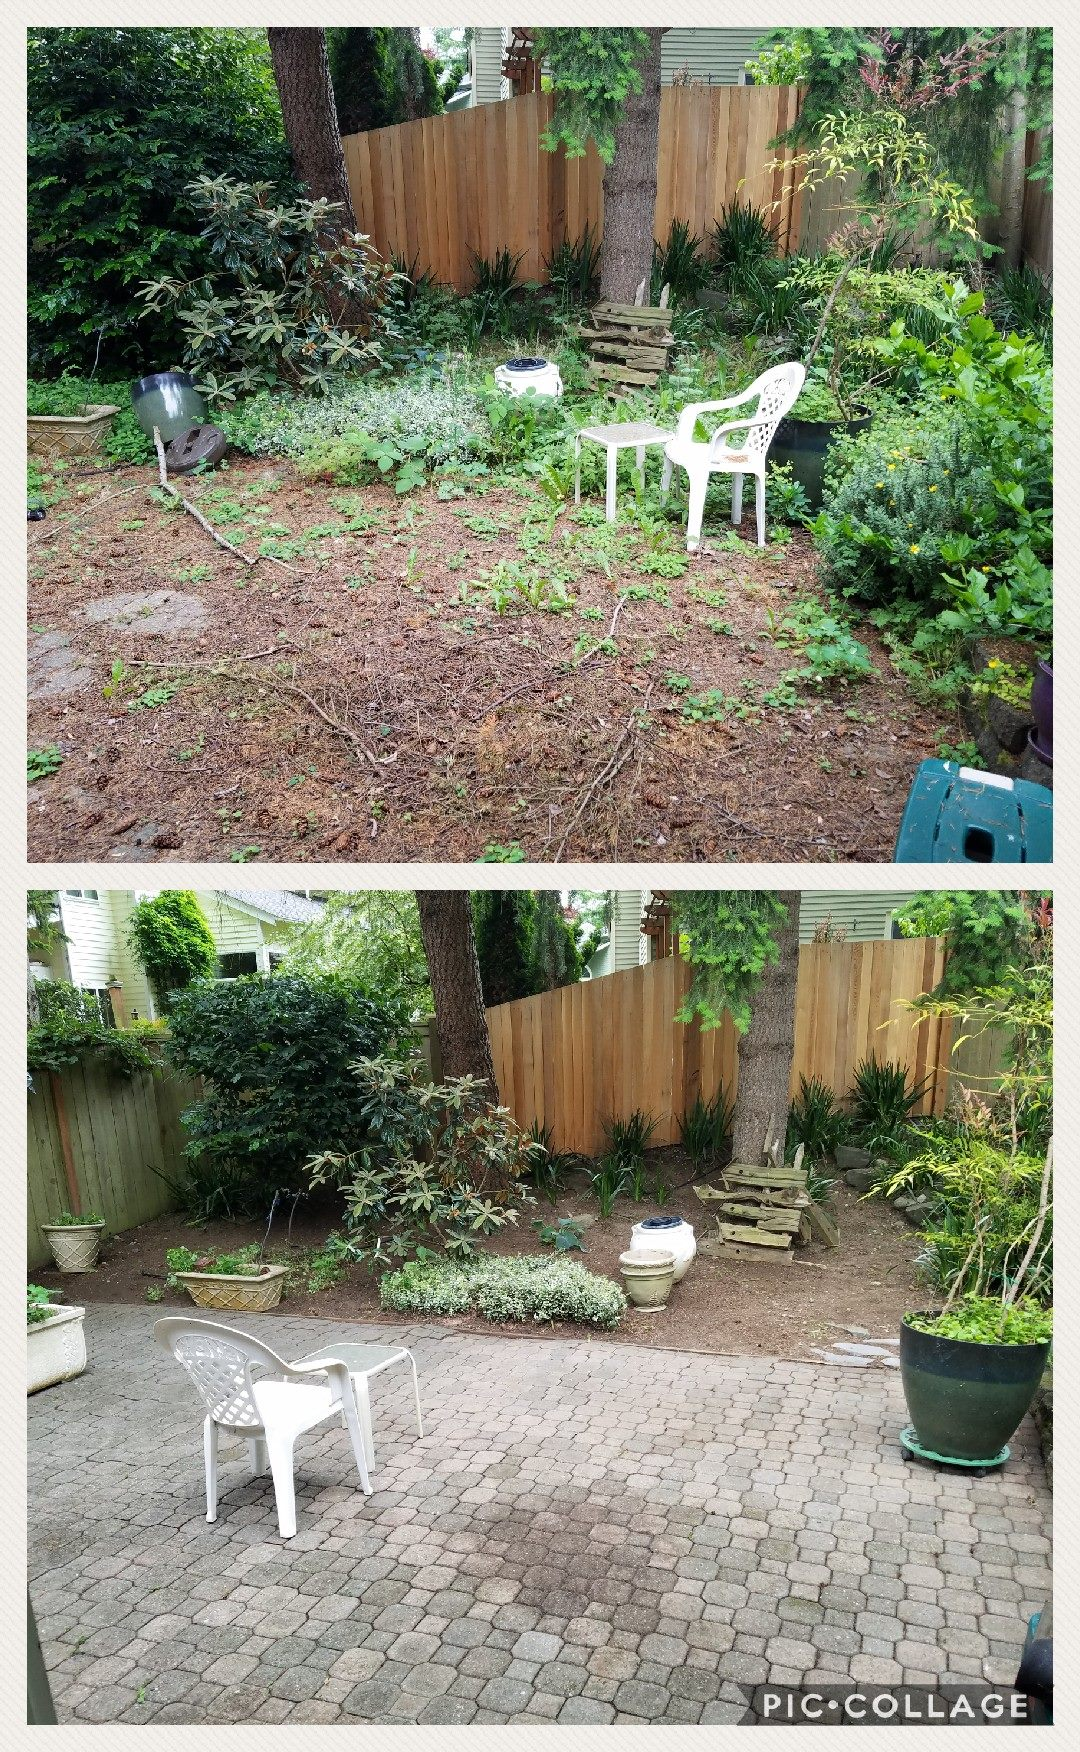 Before and after clean up